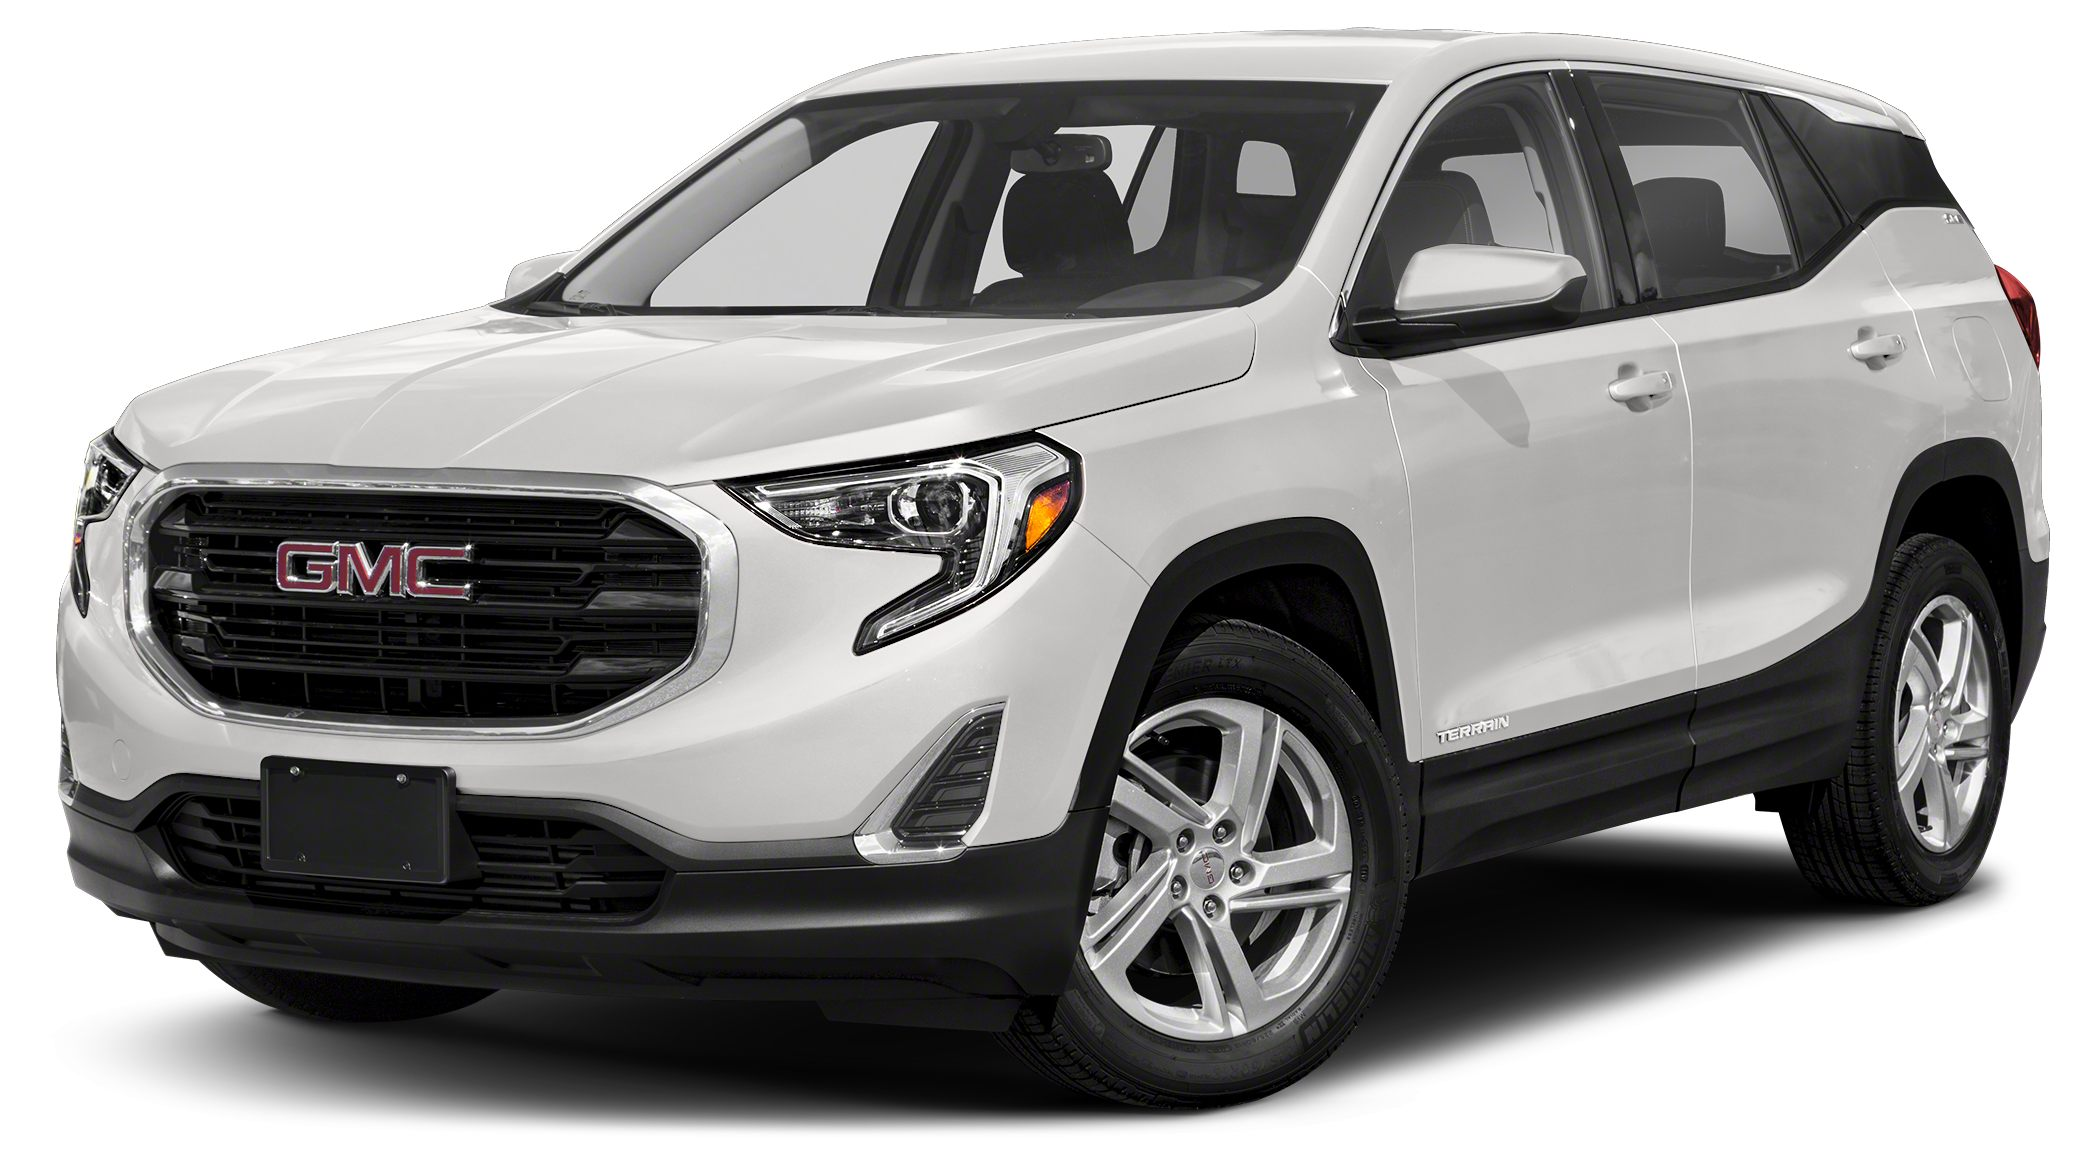 2018 GMC Terrain SLE From its striking C-shaped LED signature lighting to its stunning floating ro